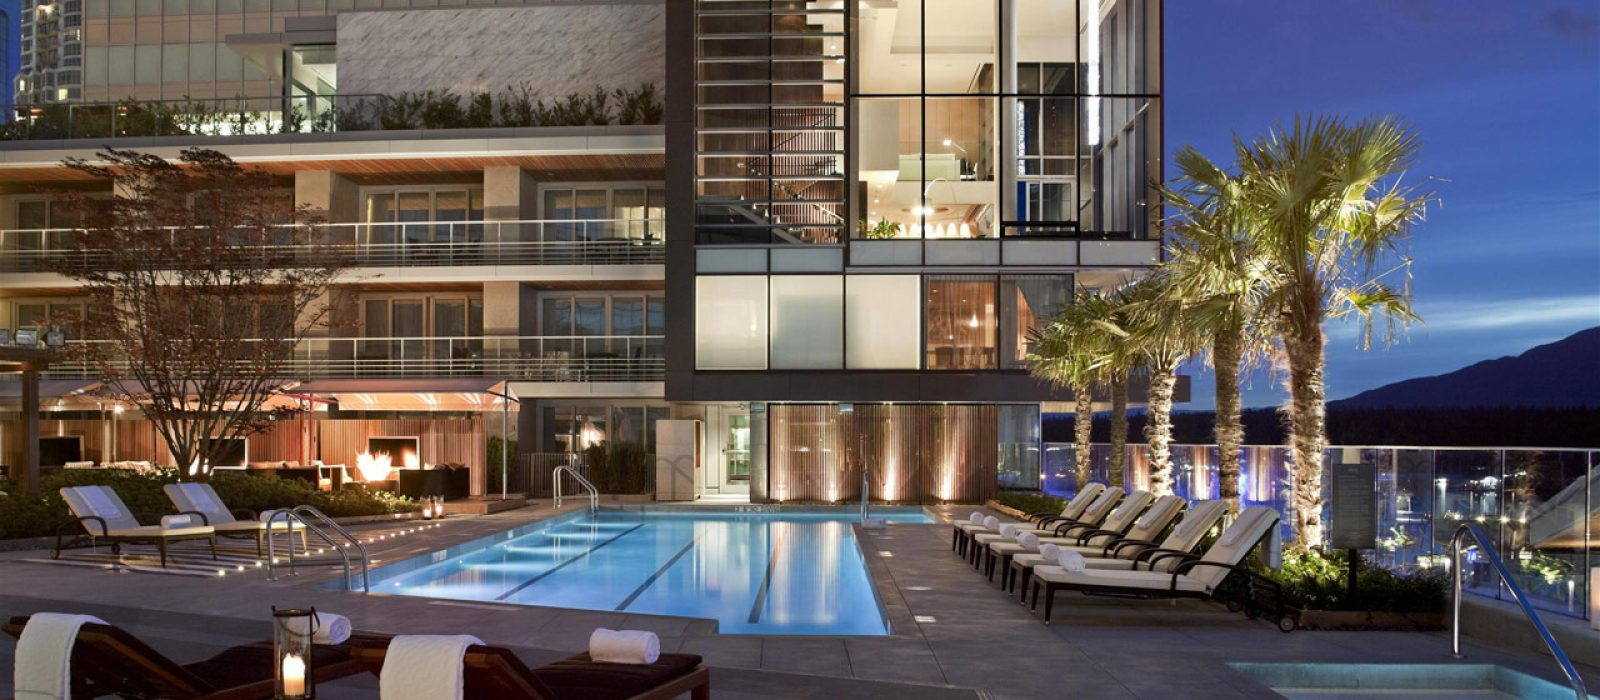 Luxurious pool deck at the Fairmont Pacific Rim at night